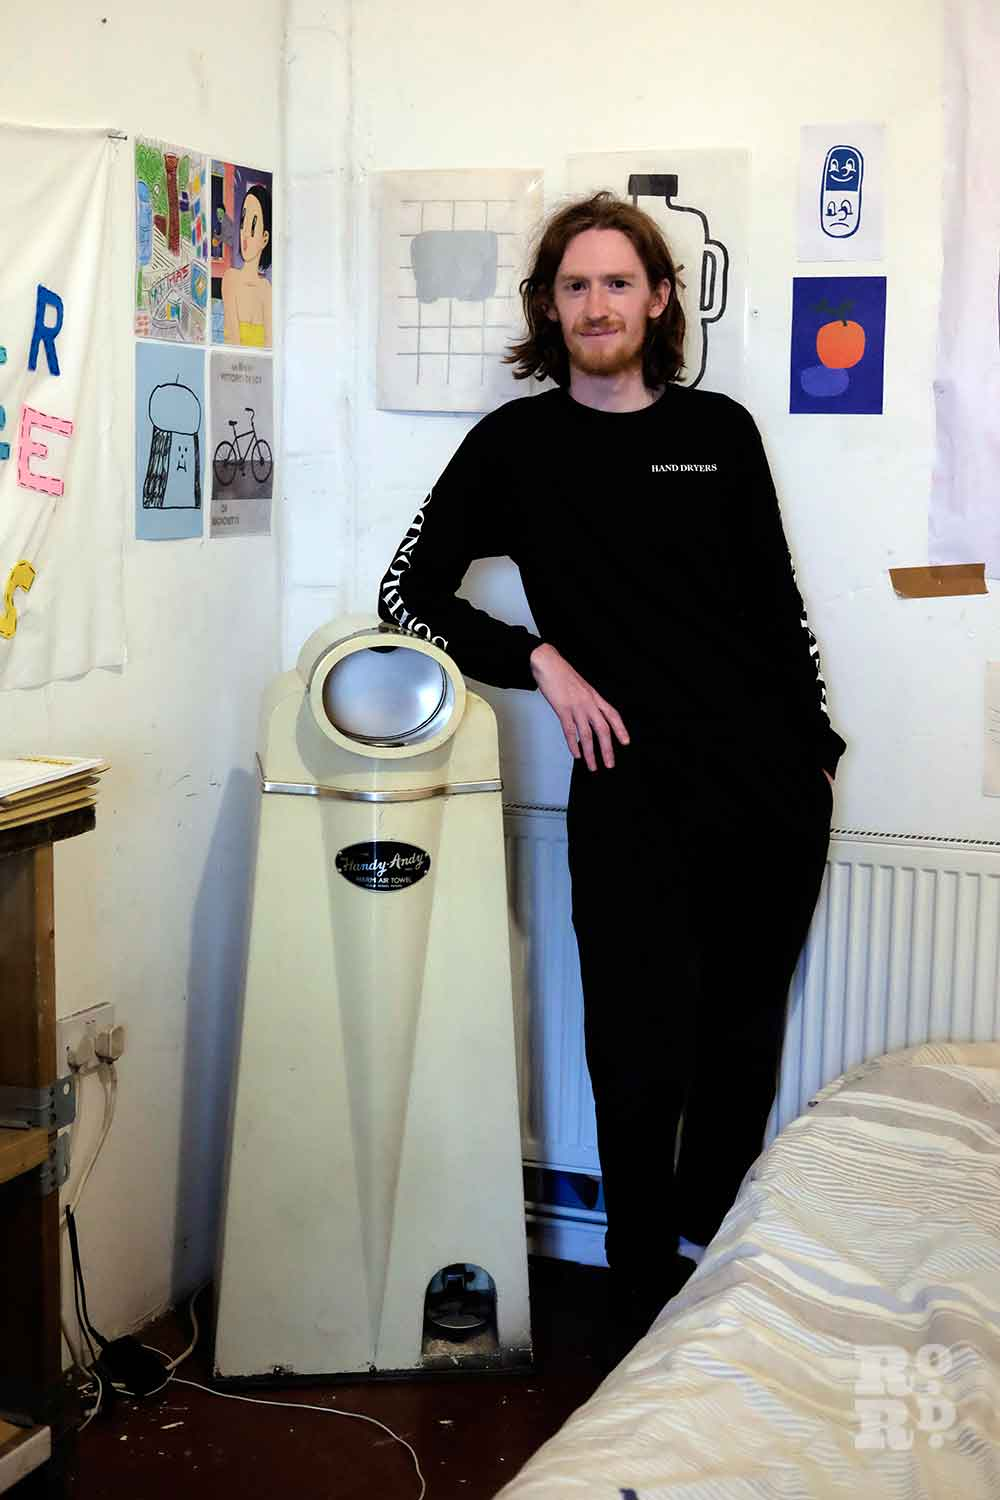 Artist Wedgley Snipes standing next to a vintage hand dryer.